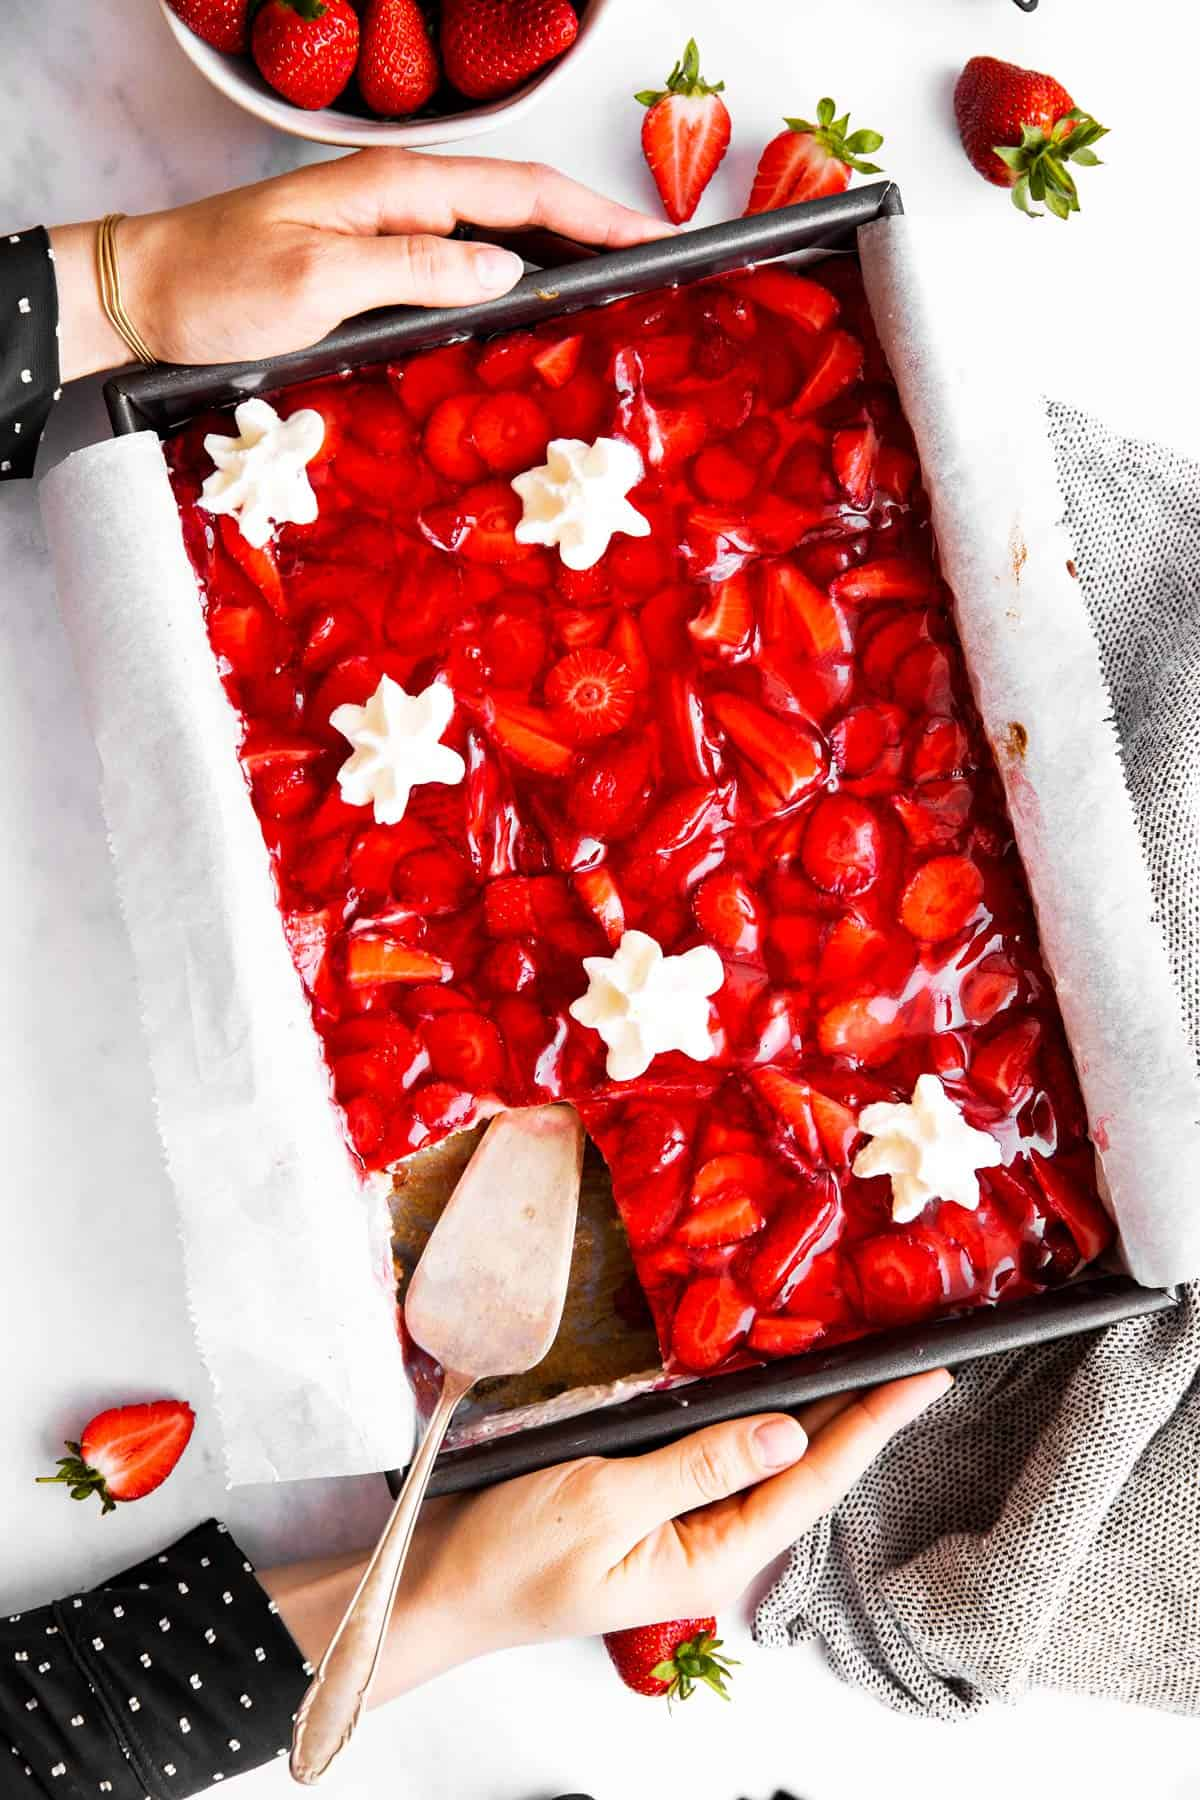 top down view on female hands holding cake pan with strawberry cake